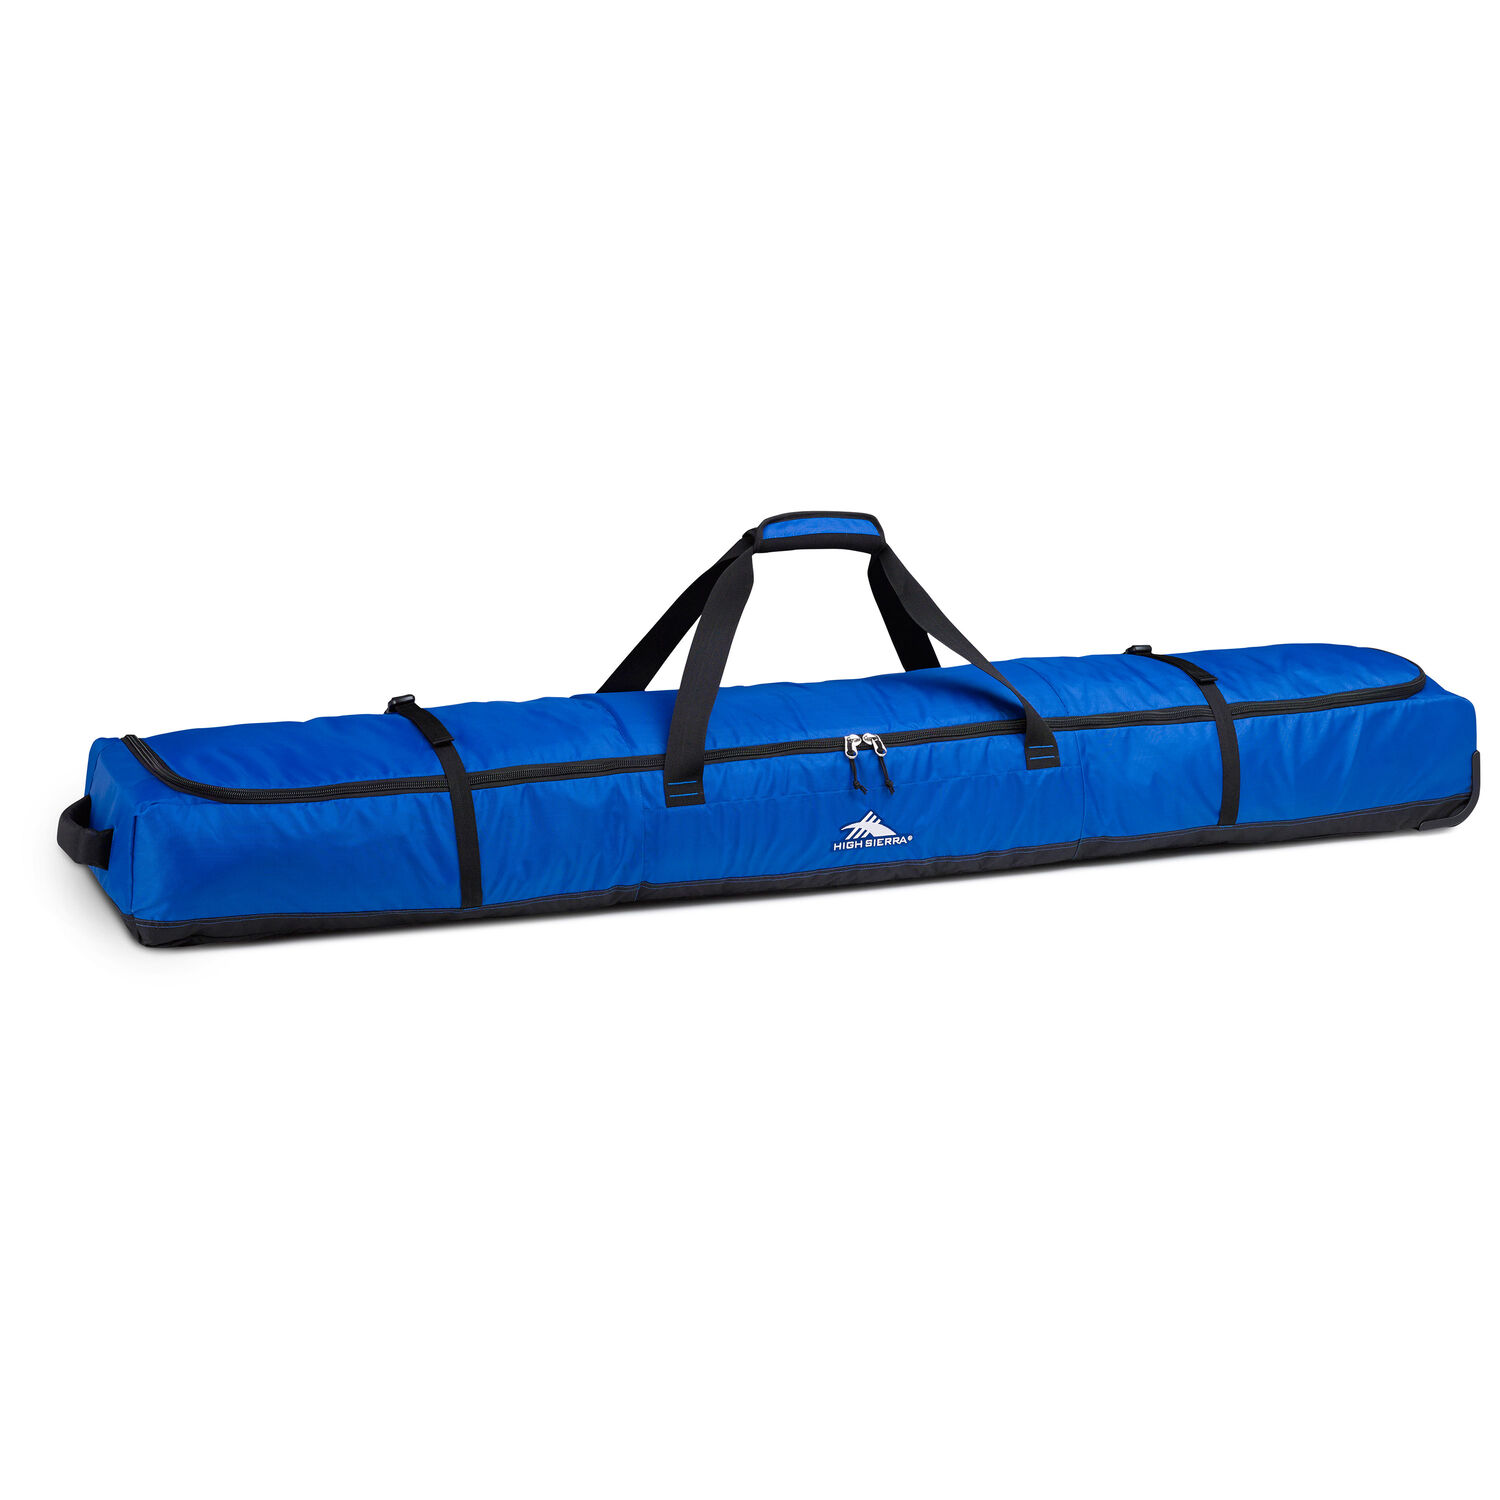 64d957eac High Sierra Deluxe Wheeled Double Ski Bag in the color Vivid Blue/Black.